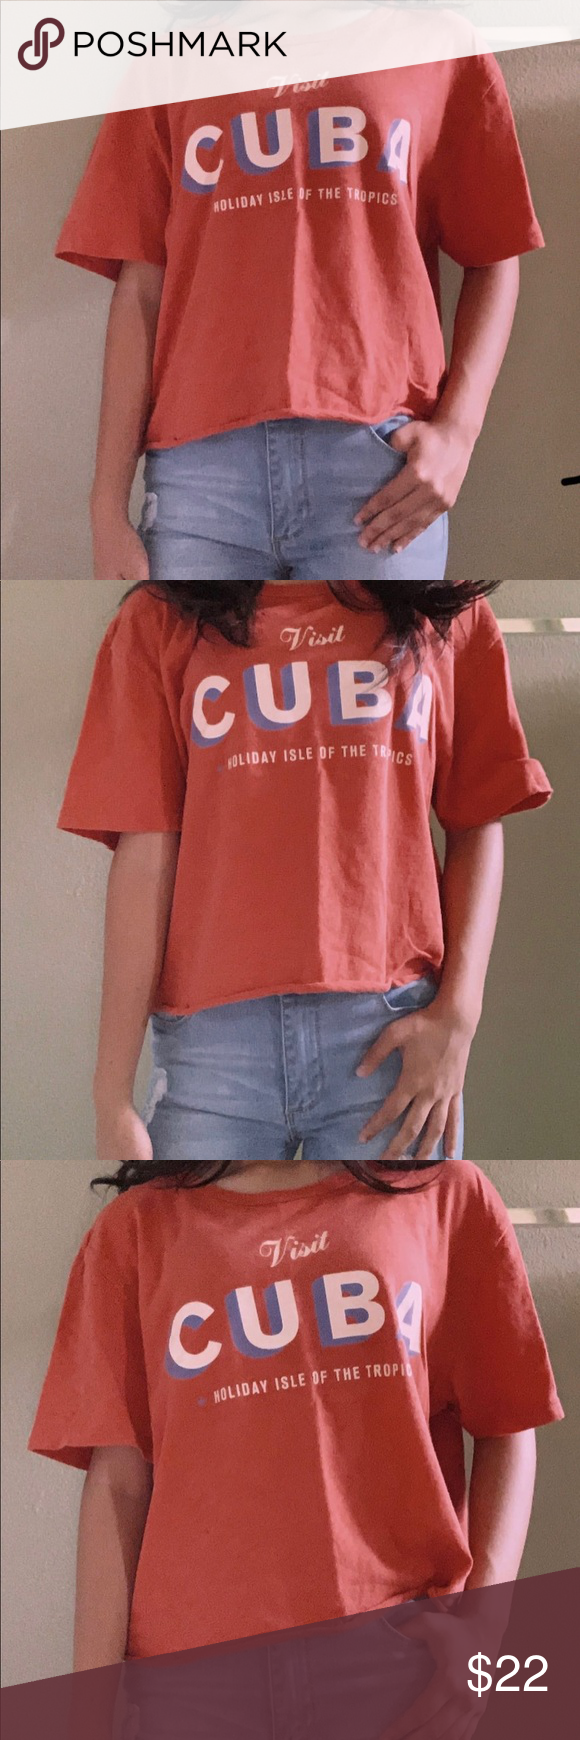 Visit Cuba Holiday Isle of The Tropics Cropped Tee Visit Cuba Holiday Isle of The Tropics Cropped Tee Dark Orange-Red Color Lucky Brand Tops Crop Tops #visitcuba Visit Cuba Holiday Isle of The Tropics Cropped Tee Visit Cuba Holiday Isle of The Tropics Cropped Tee Dark Orange-Red Color Lucky Brand Tops Crop Tops #visitcuba